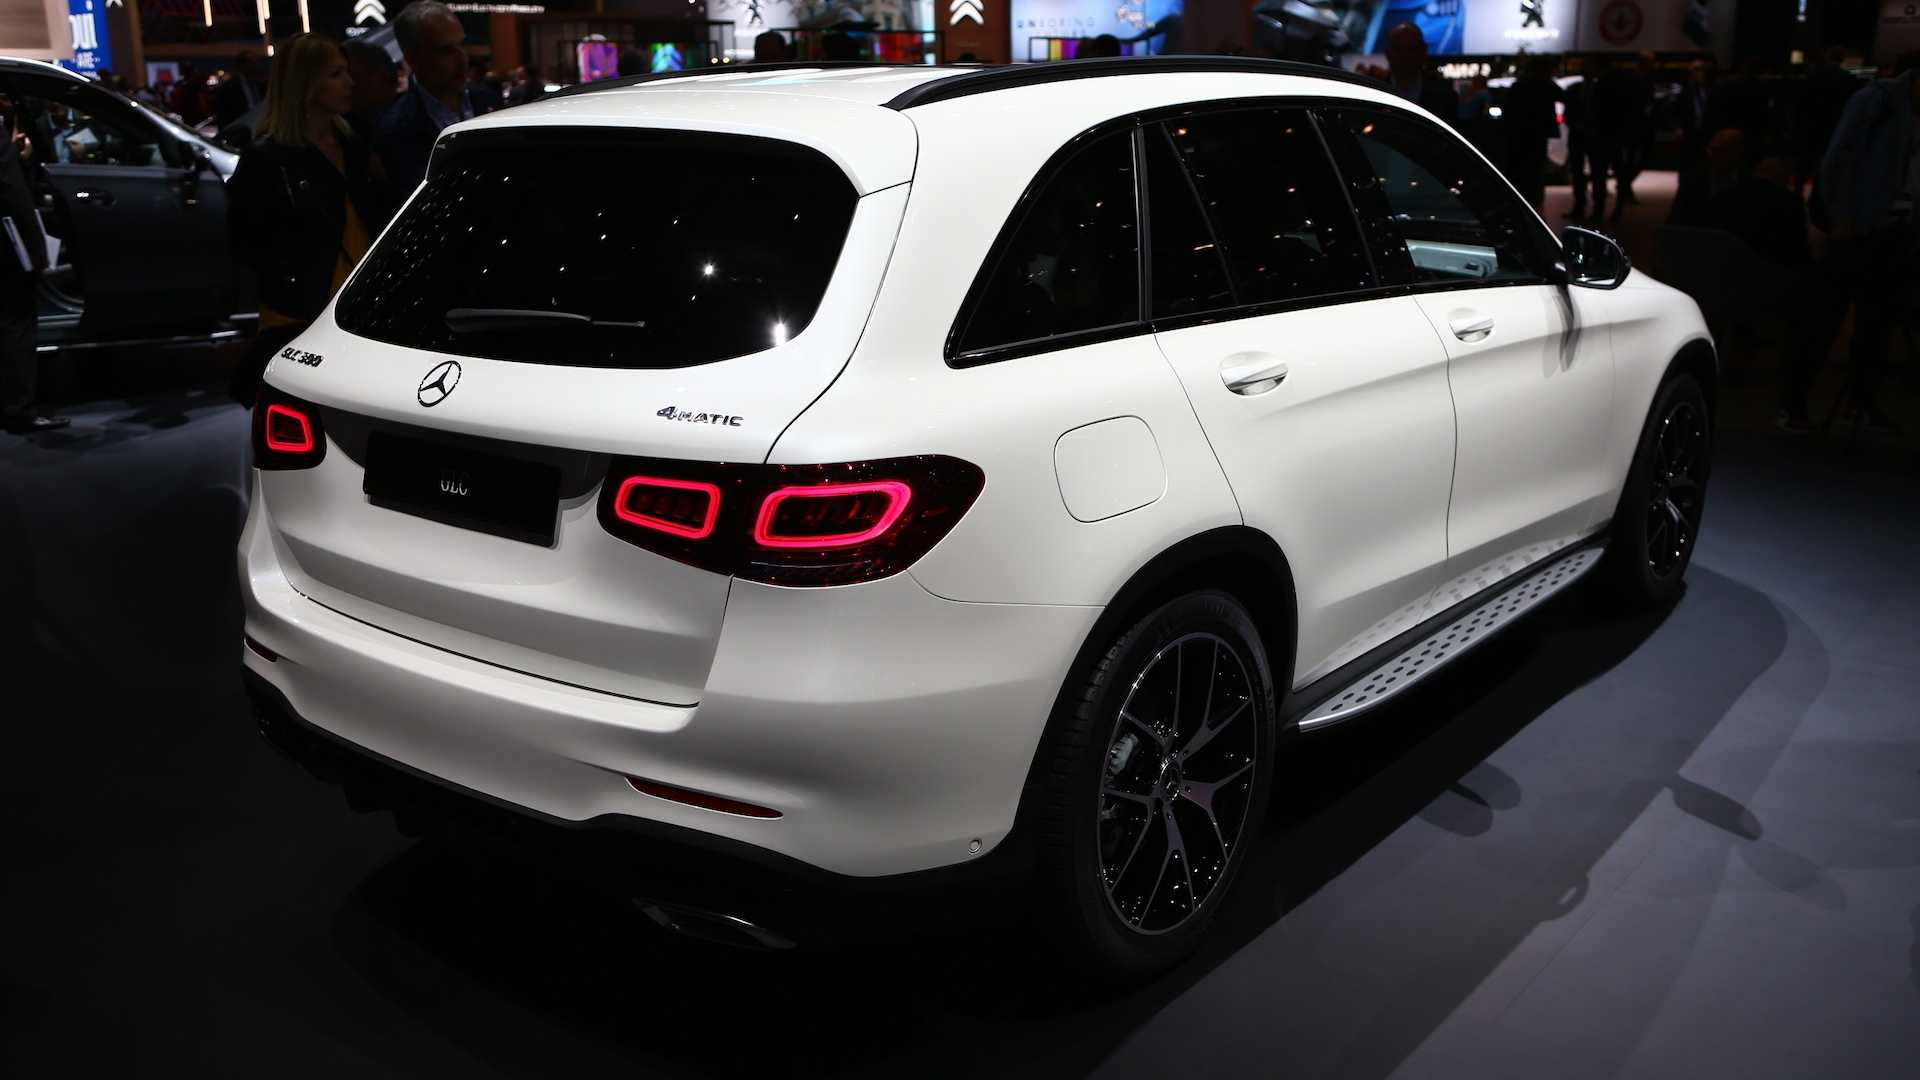 54 The Best 2020 Mercedes Glc Specs